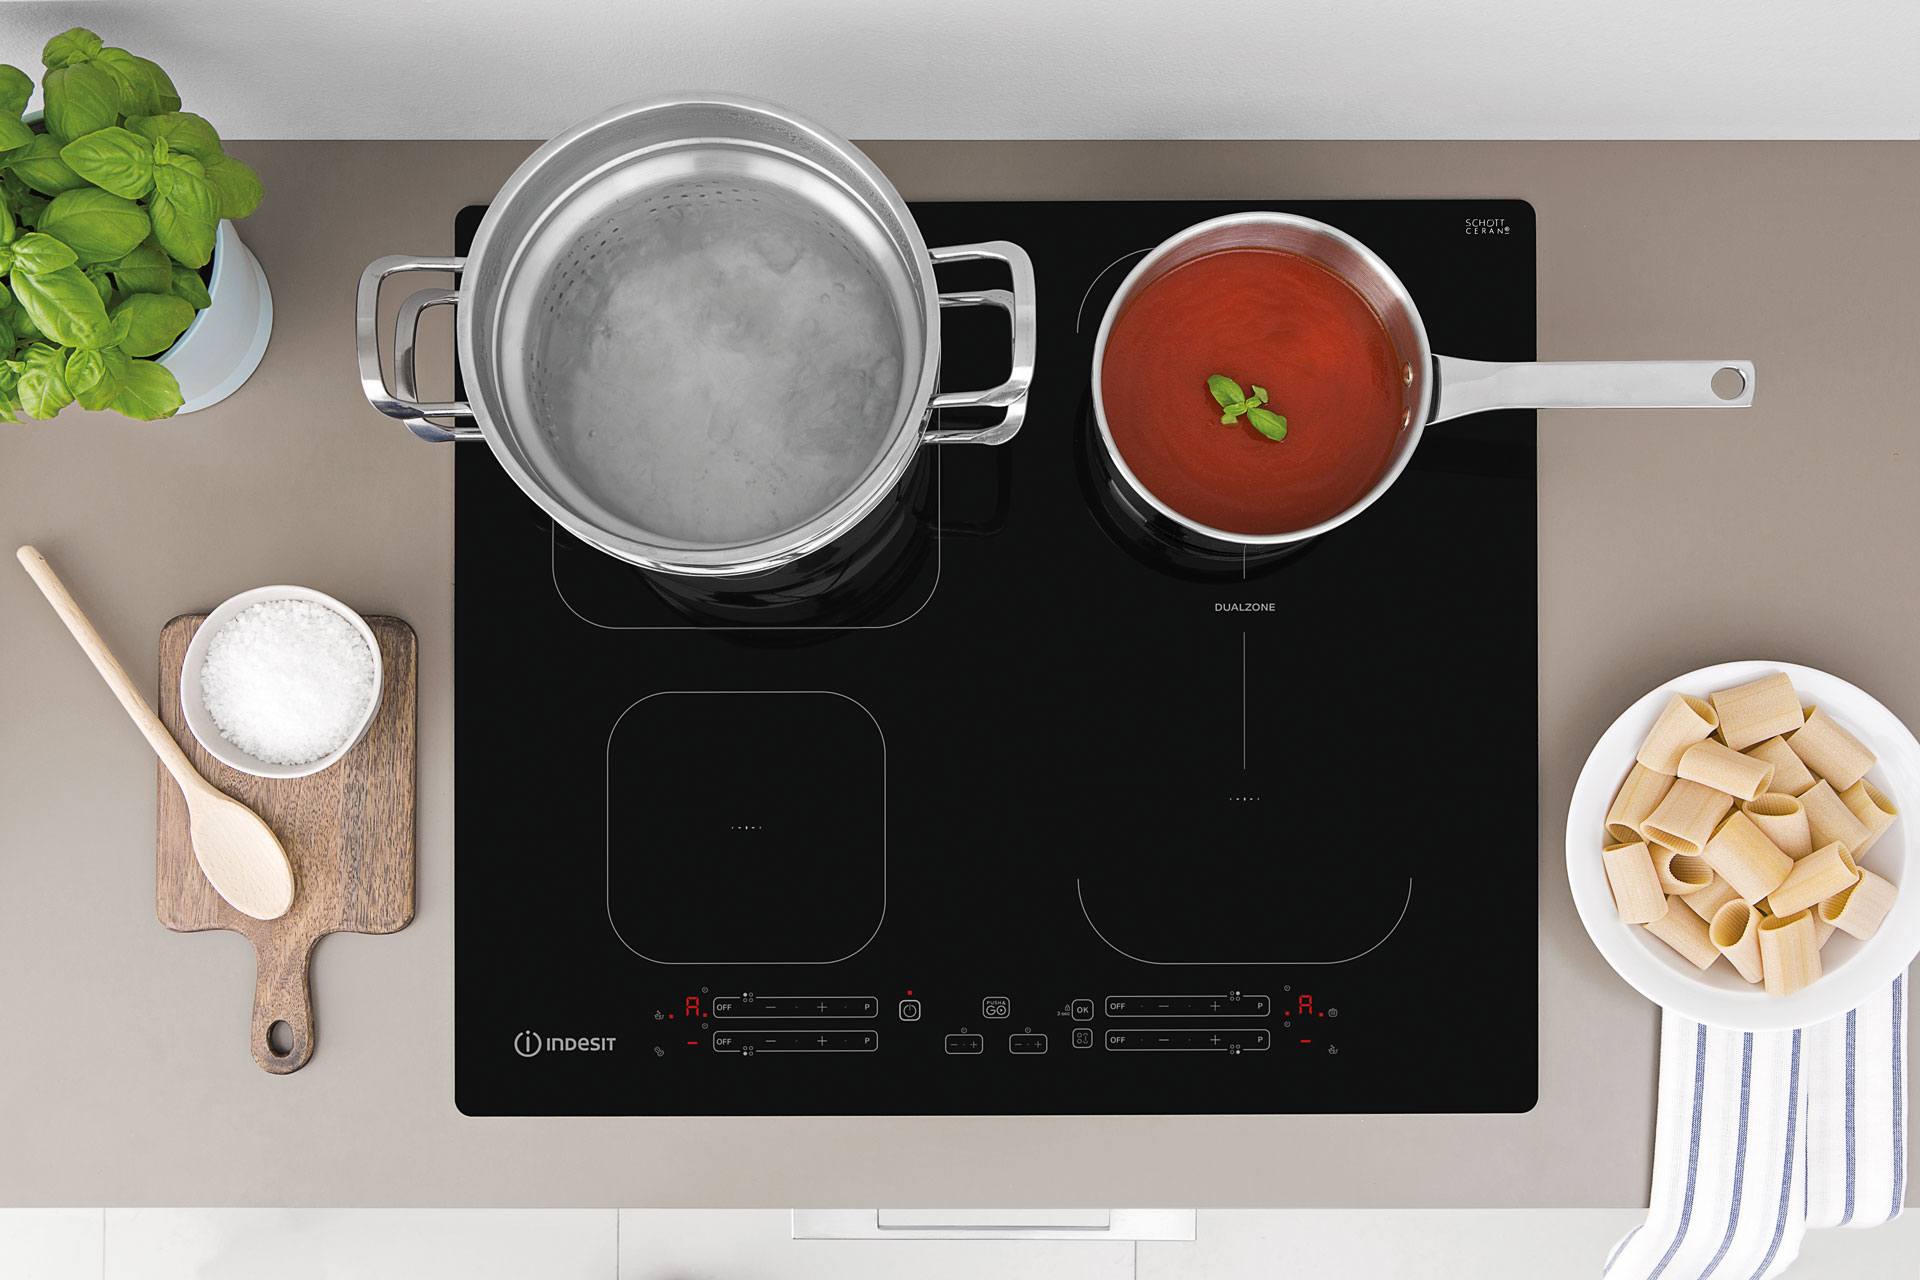 Indesit Push&Go induction hobs: efficient, practical and reliable - Cucine LUBE